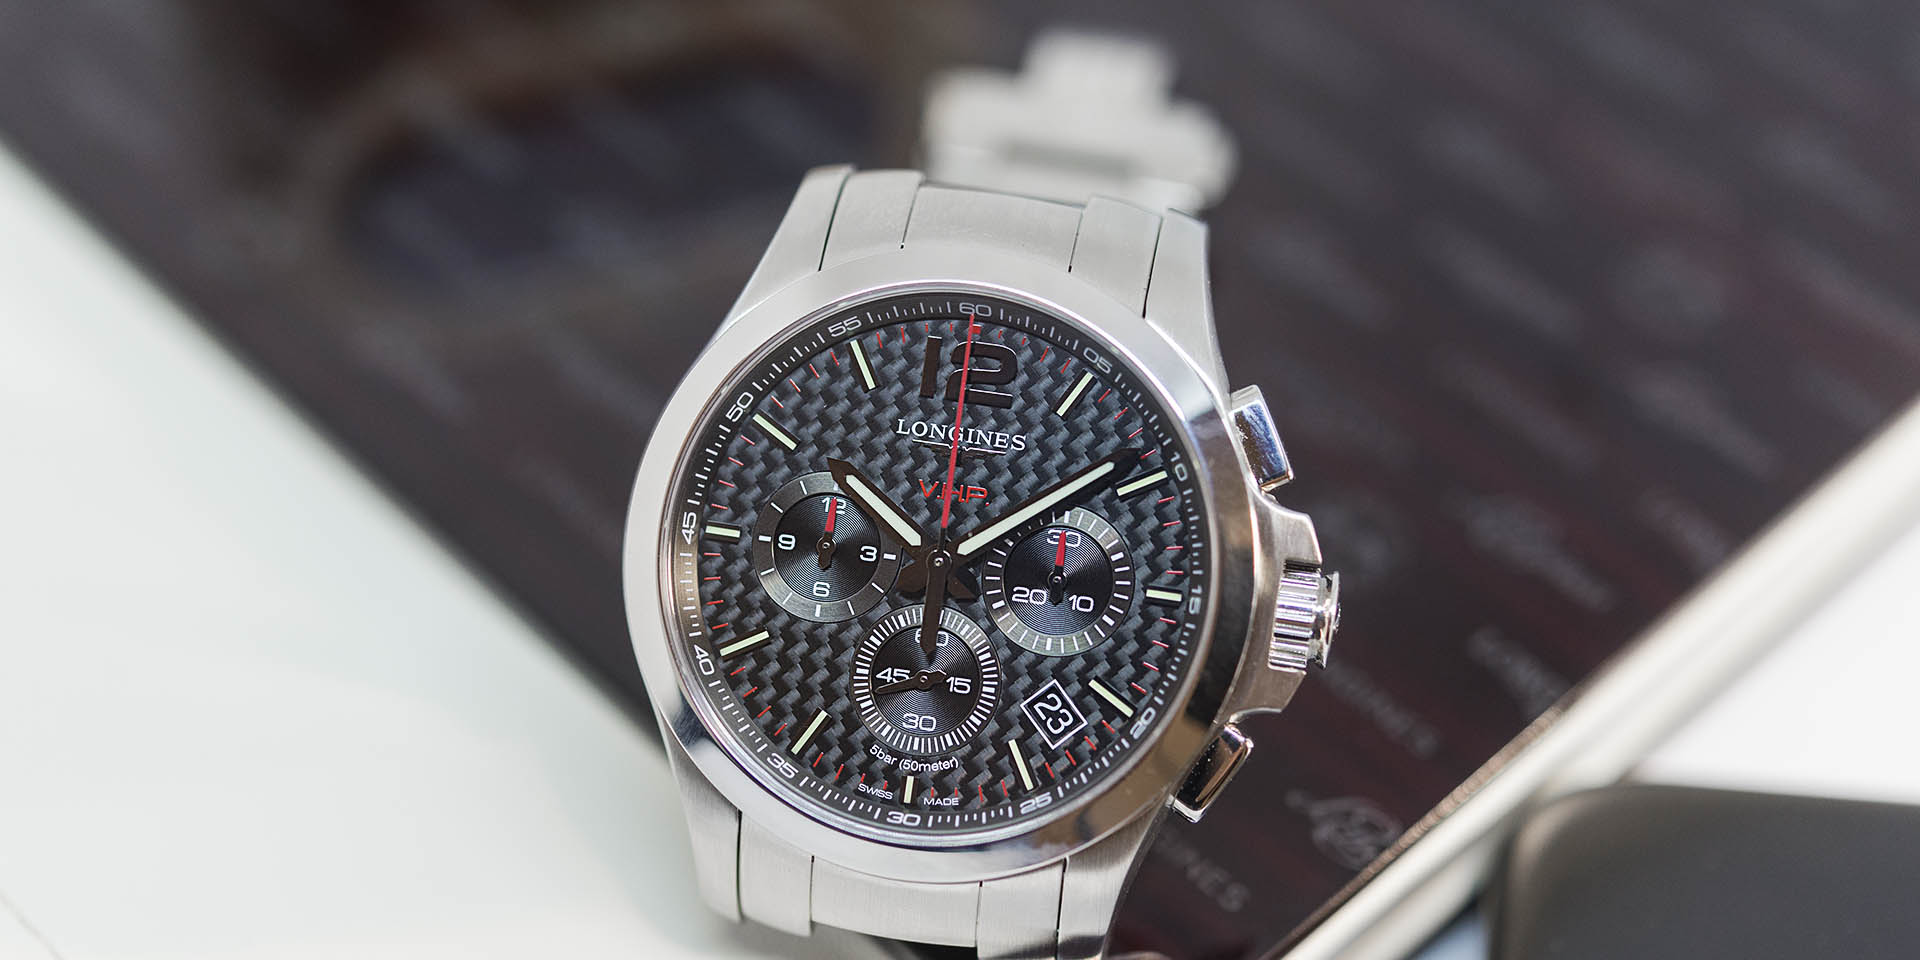 l3-727-4-66-6-longines-conquest-vhp-chronograph-5.jpg